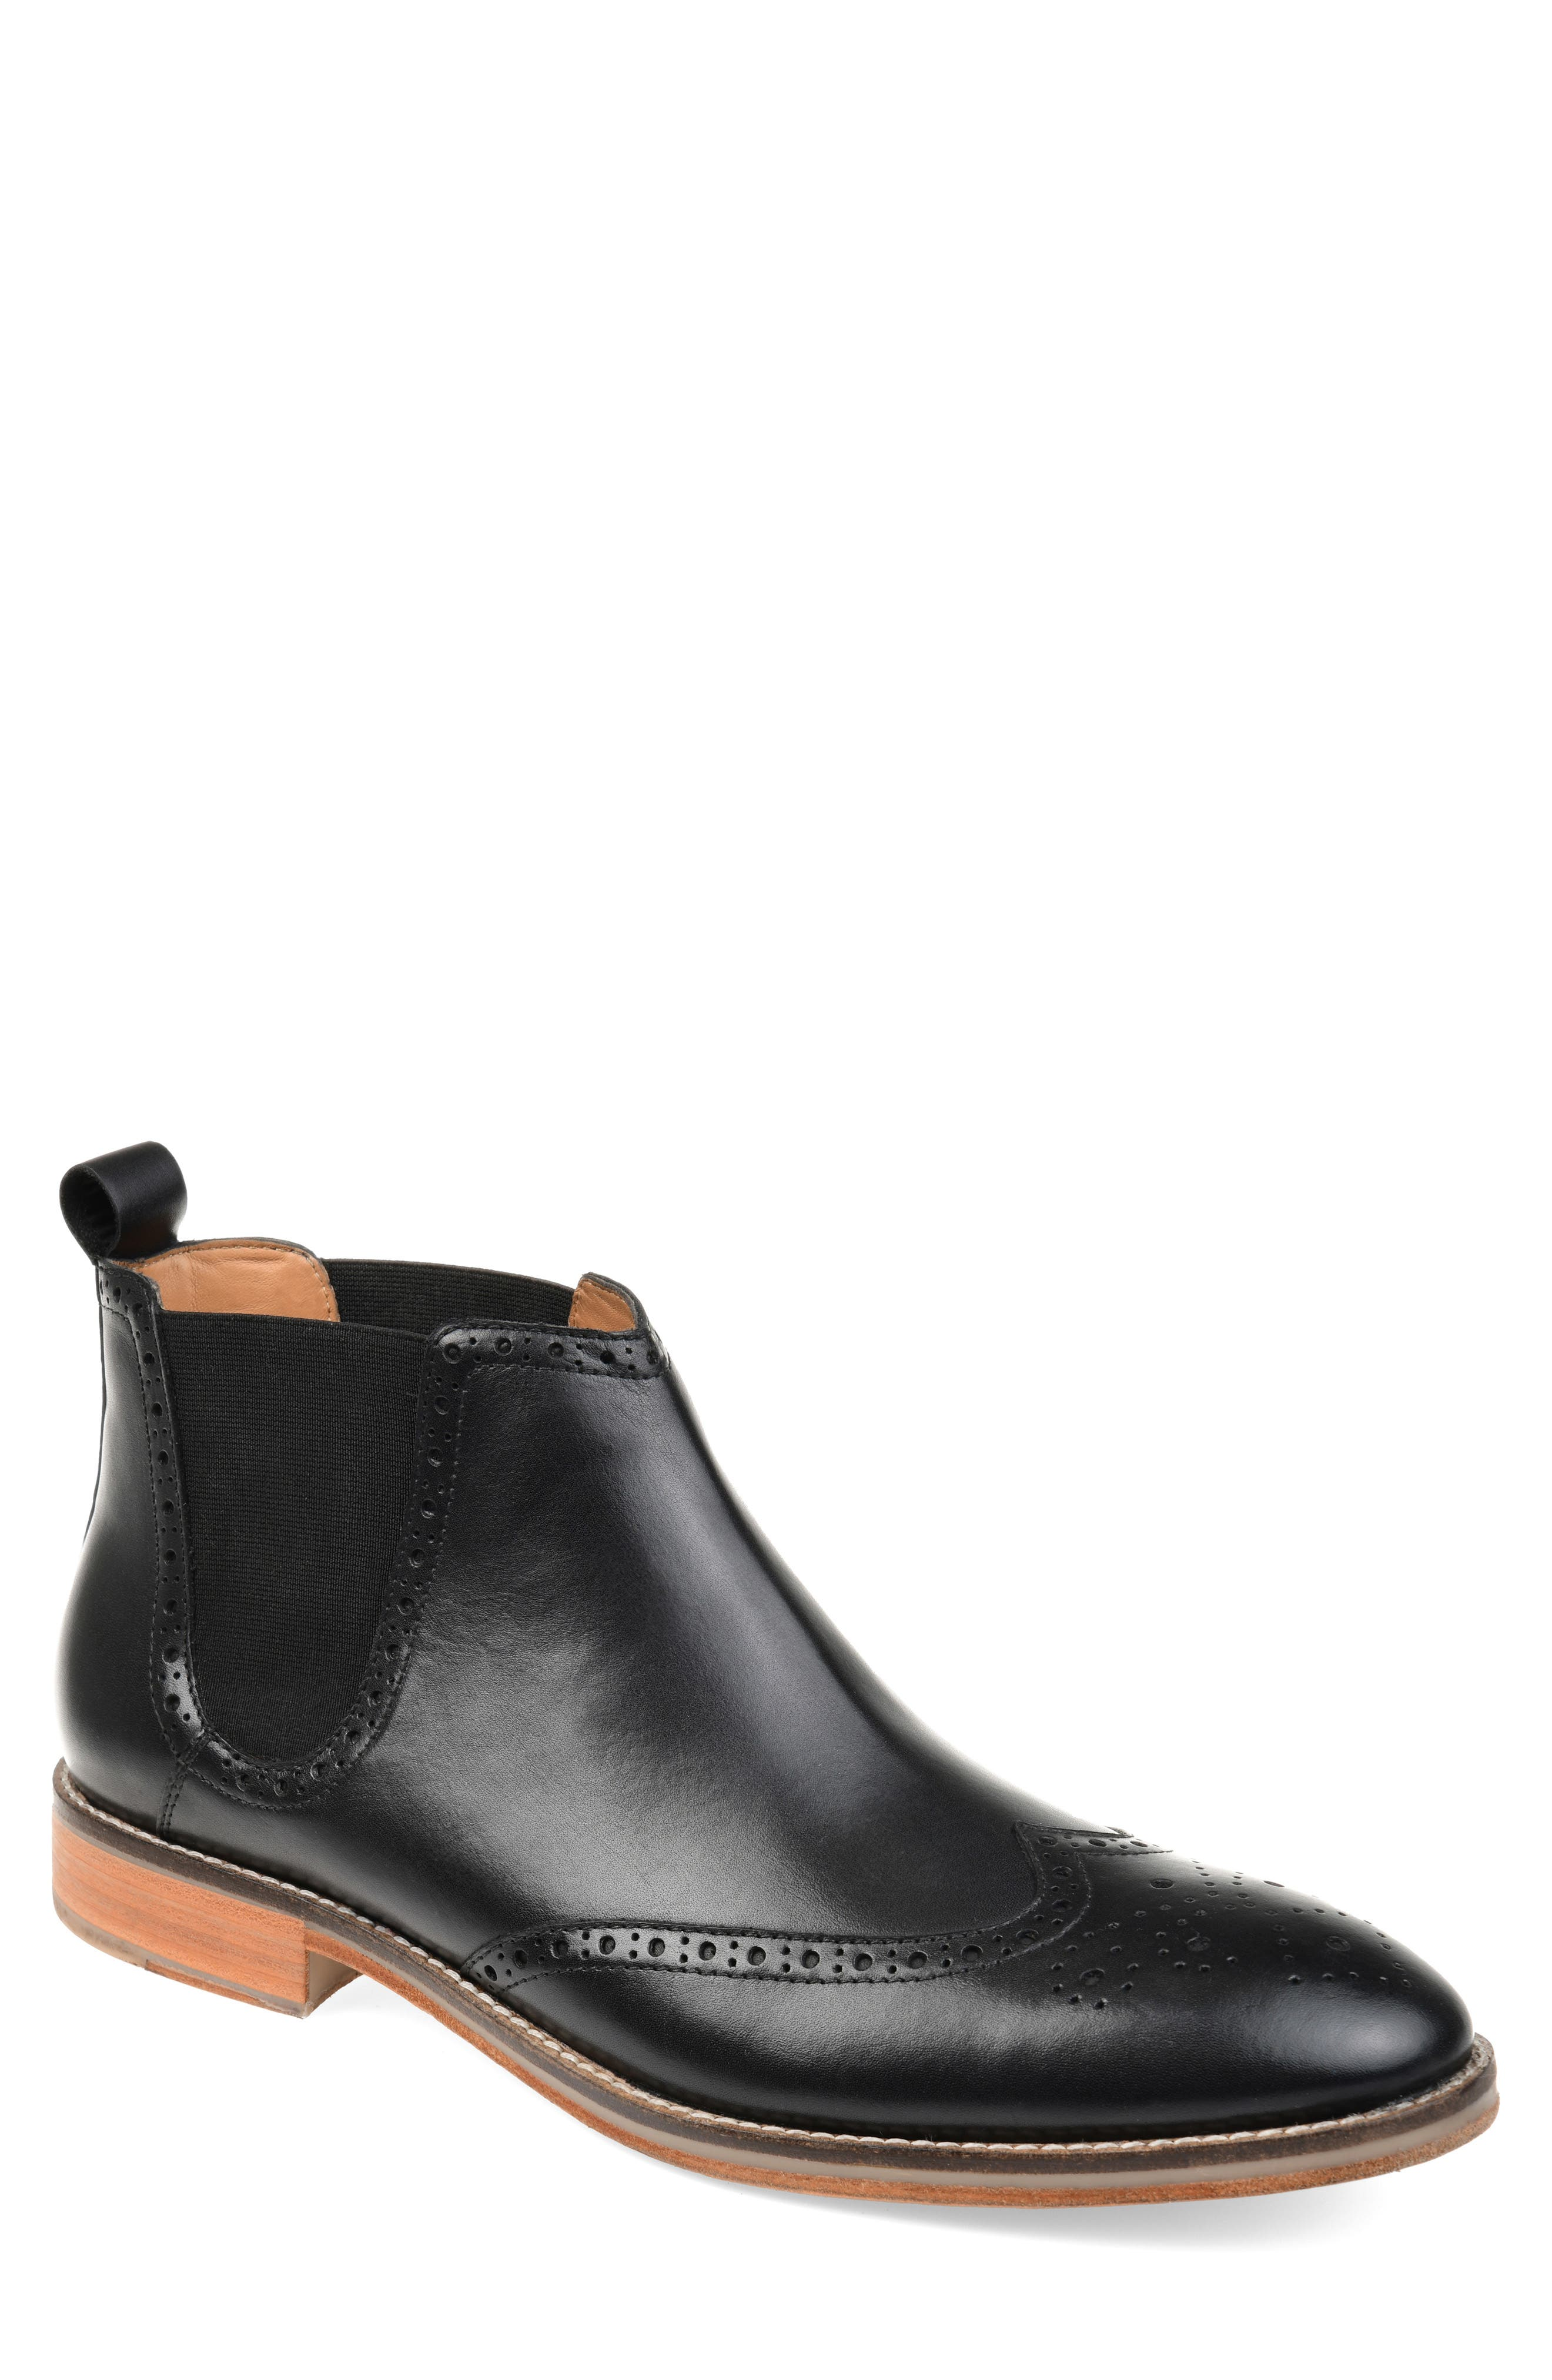 THOMAS AND VINE Thorne Wingtip Chelsea Boot, Main, color, BLACK LEATHER